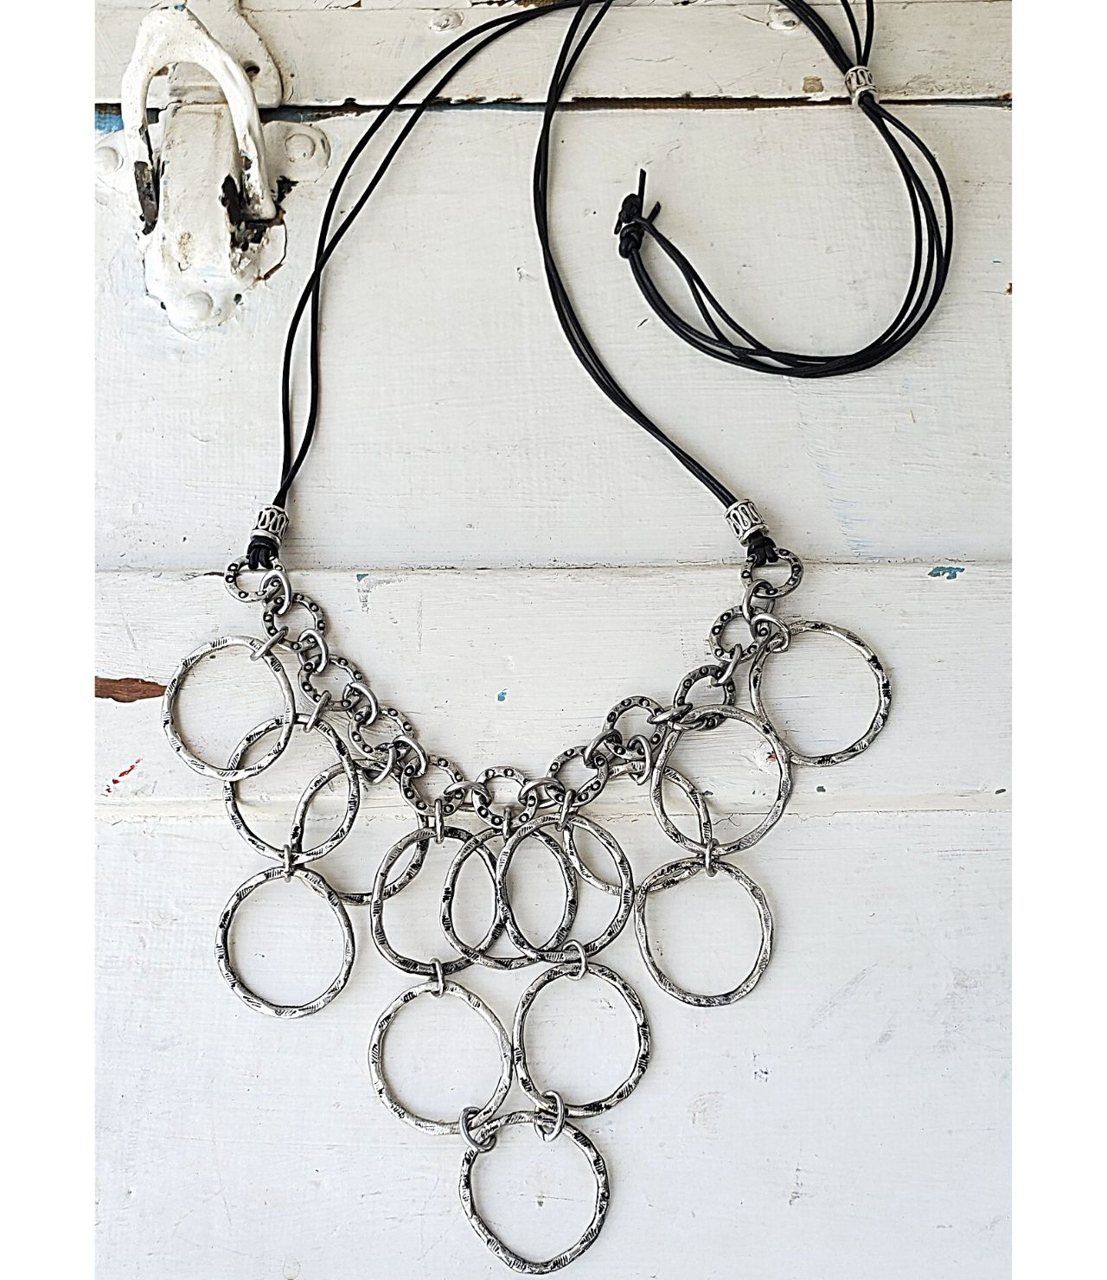 full view silver circle bib necklace on white distressed wood